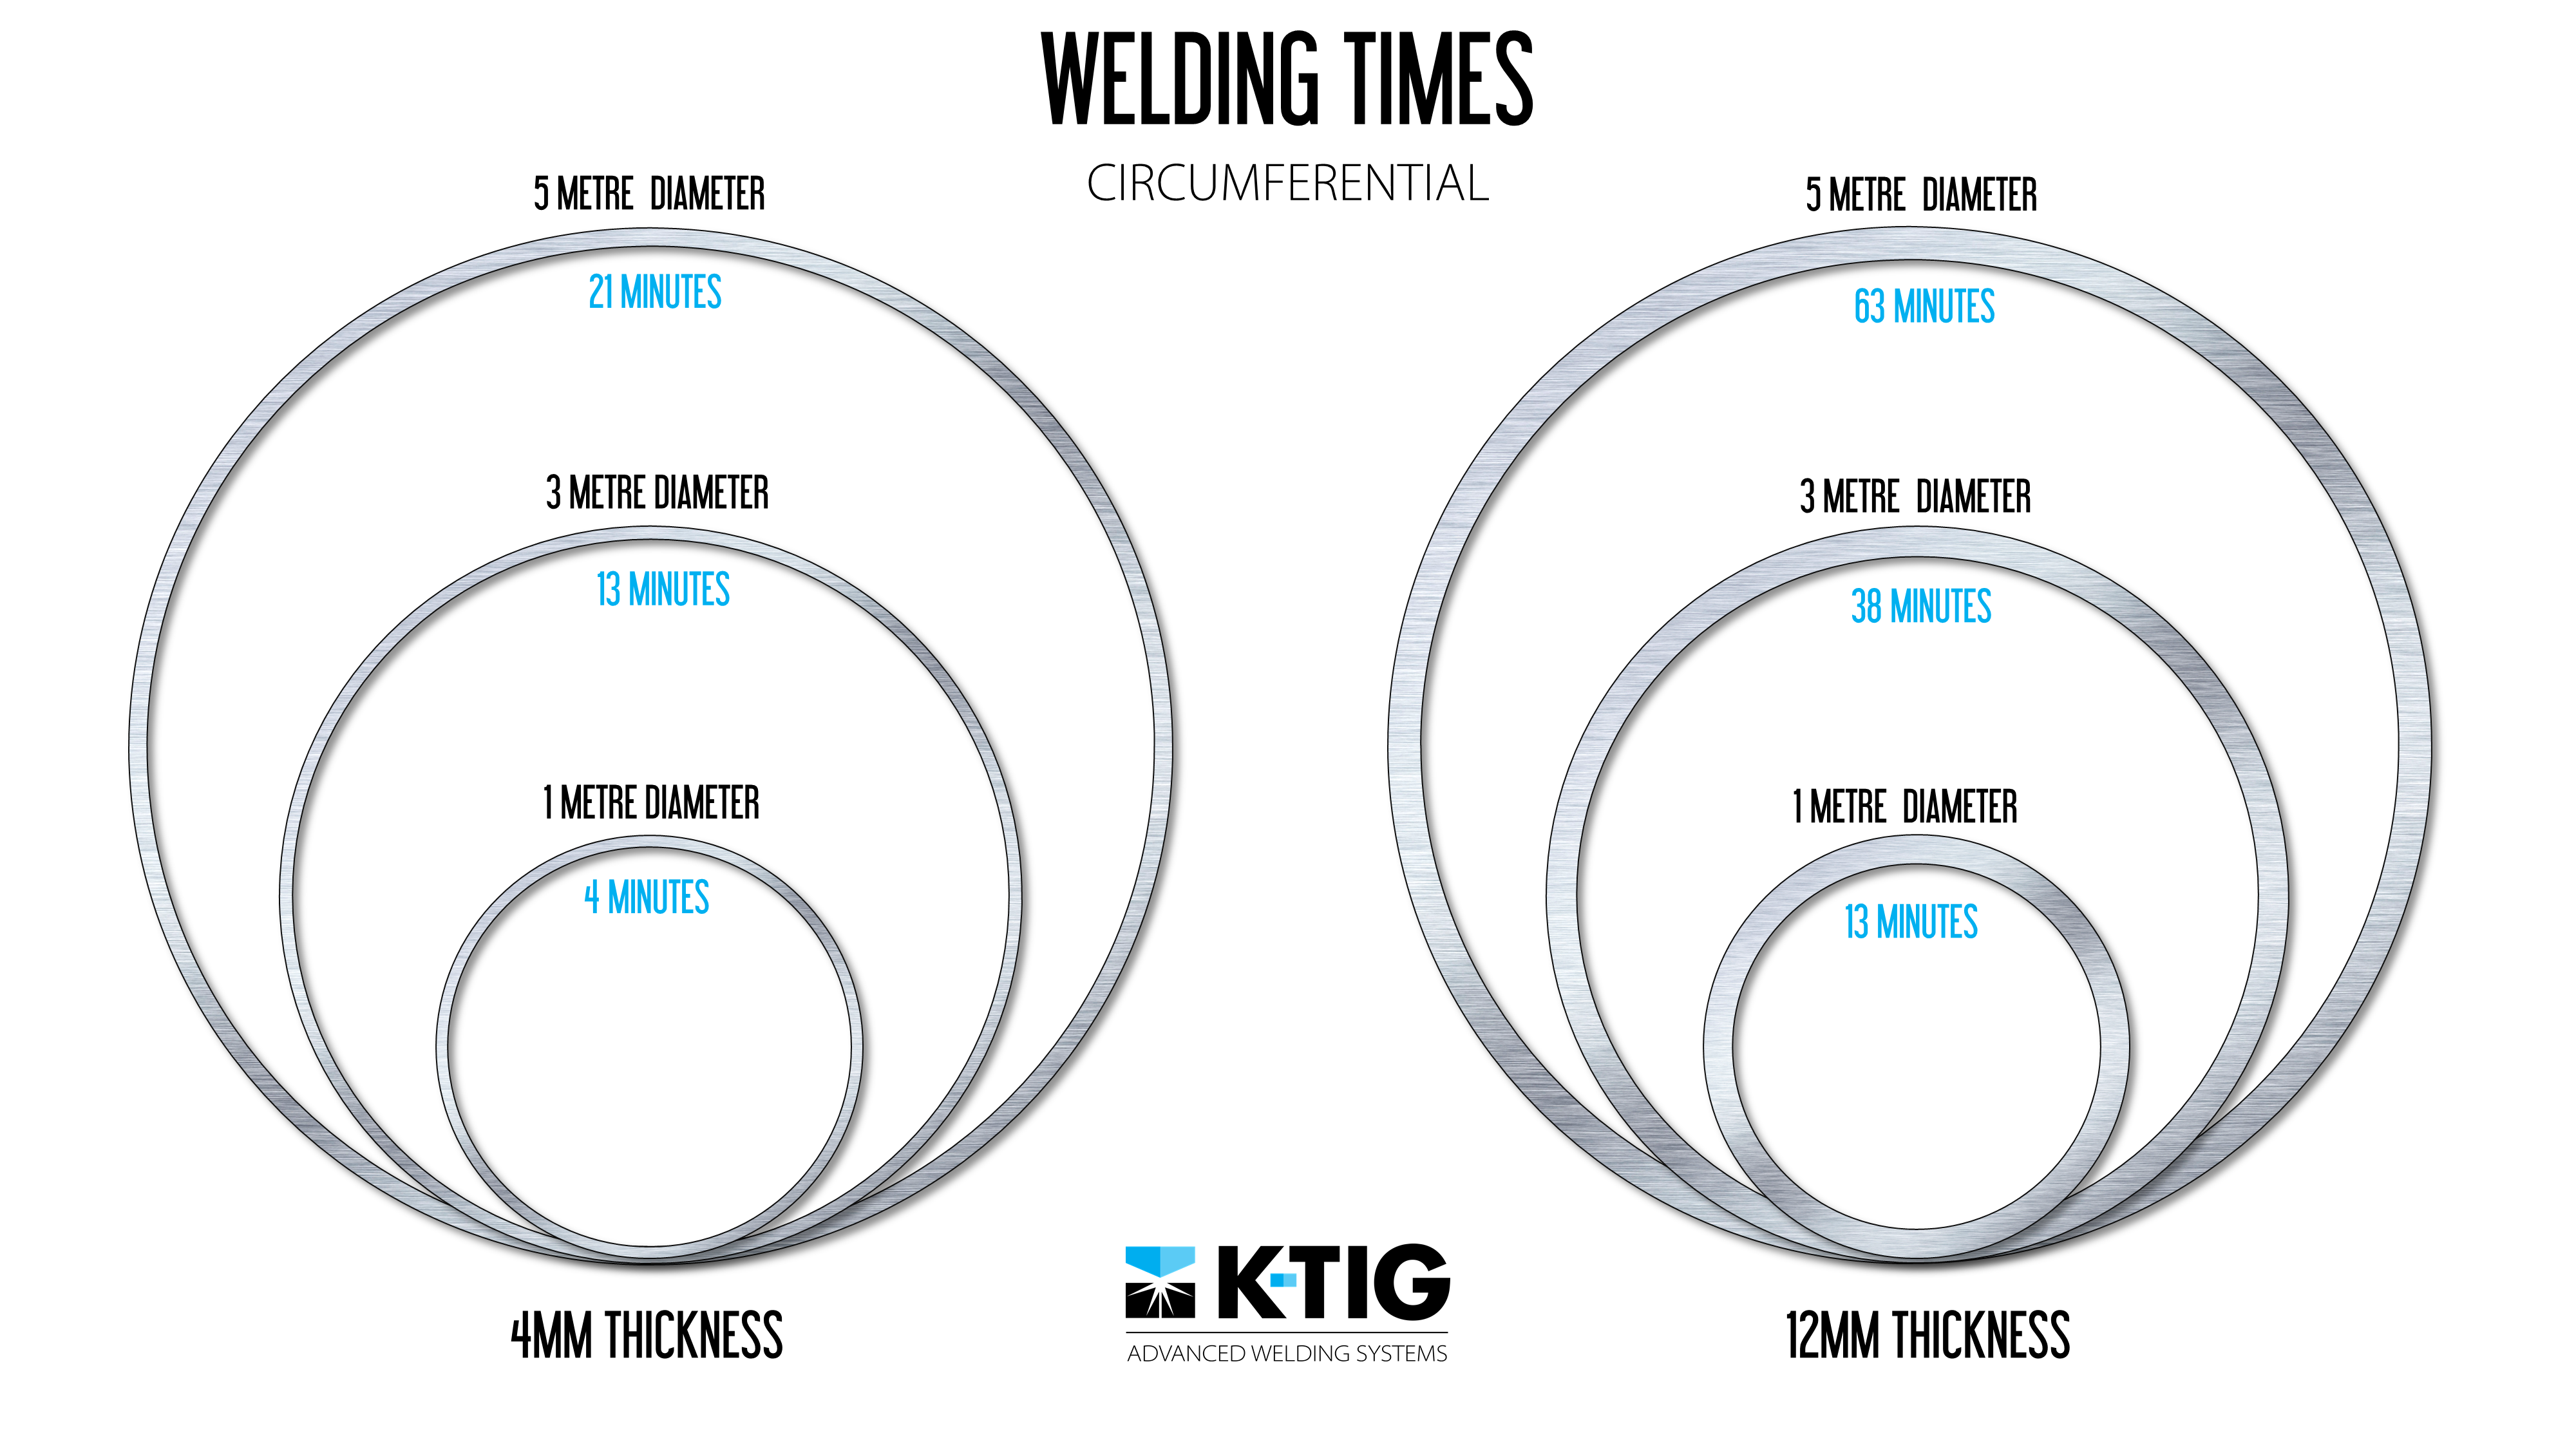 K Tig Or Keyhole Is A Gtaw Variant Which Has Been Compared To Laser Welding Diagram In Terms Of Productivity Gains But Fraction The Cost Simple